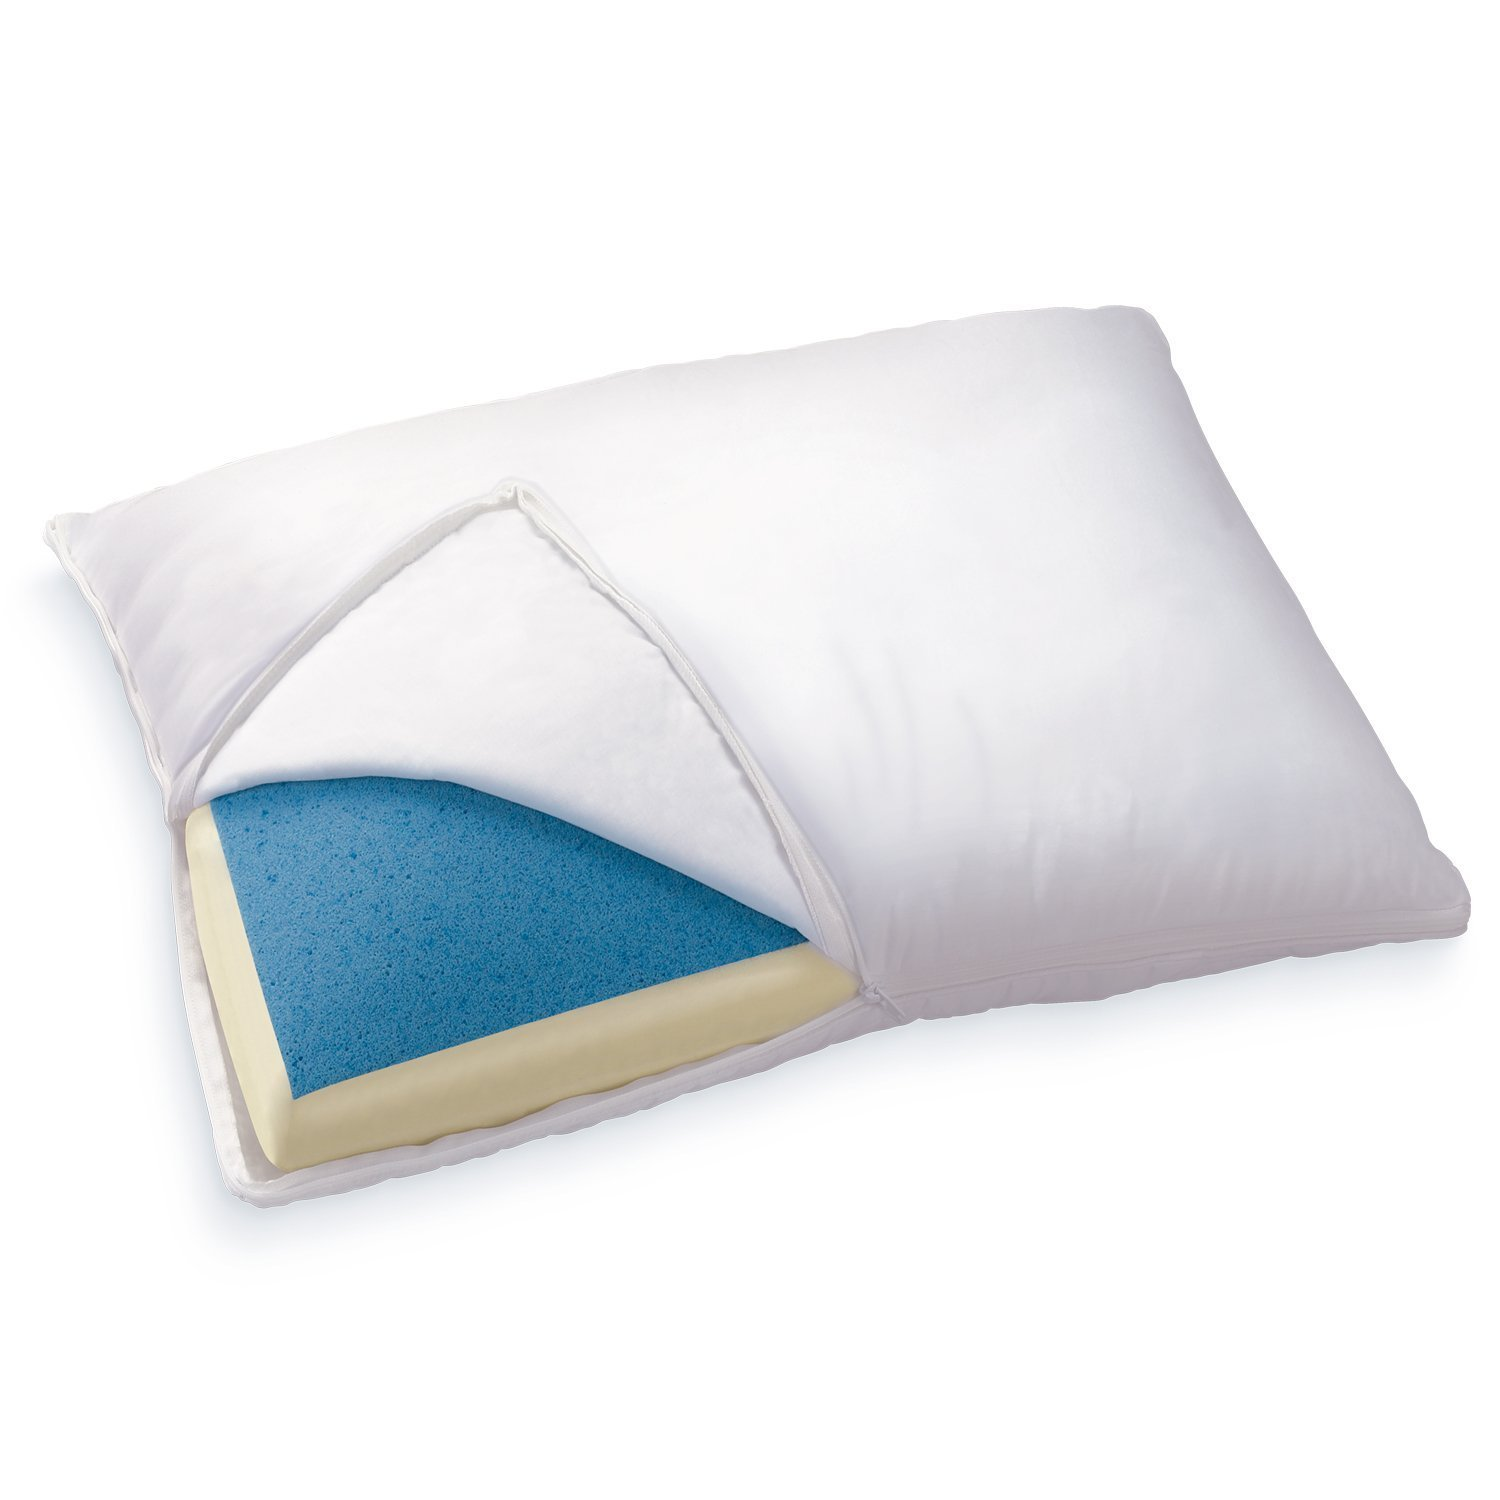 Best Pillow for Night Sweats: Sleep Cool and Comfortable